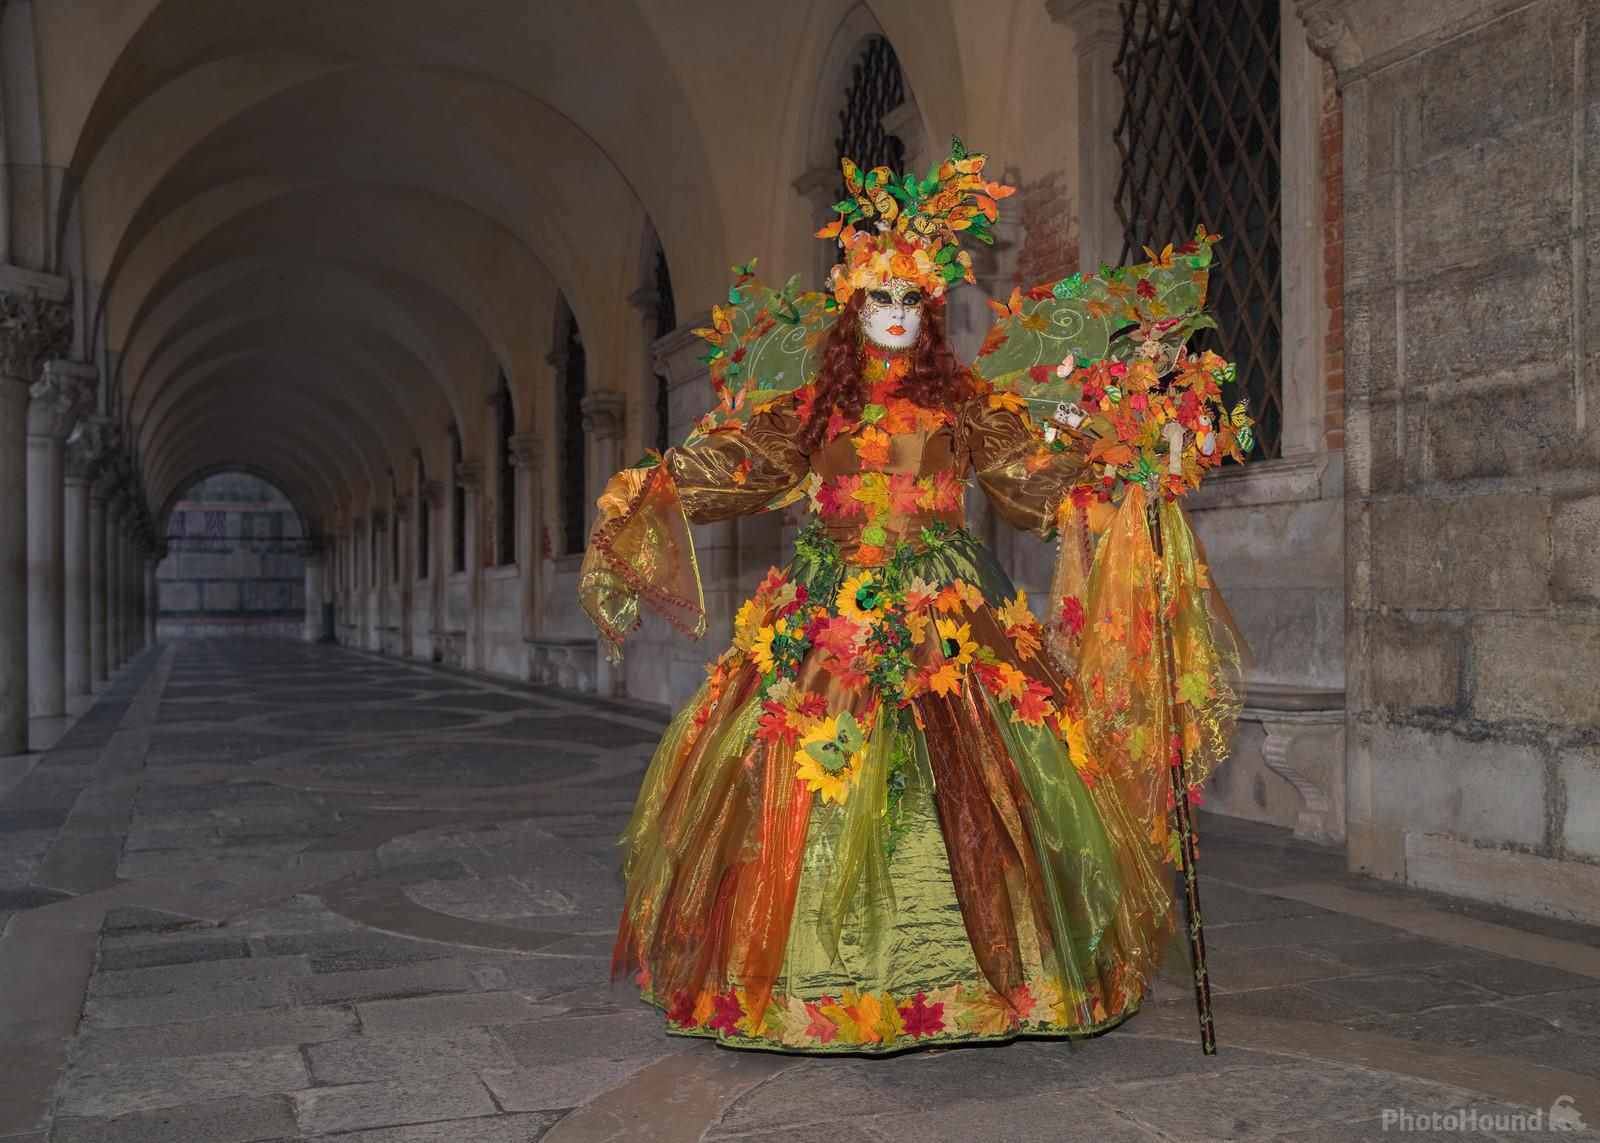 Image of Carnevale di Venezia by Mikki Young